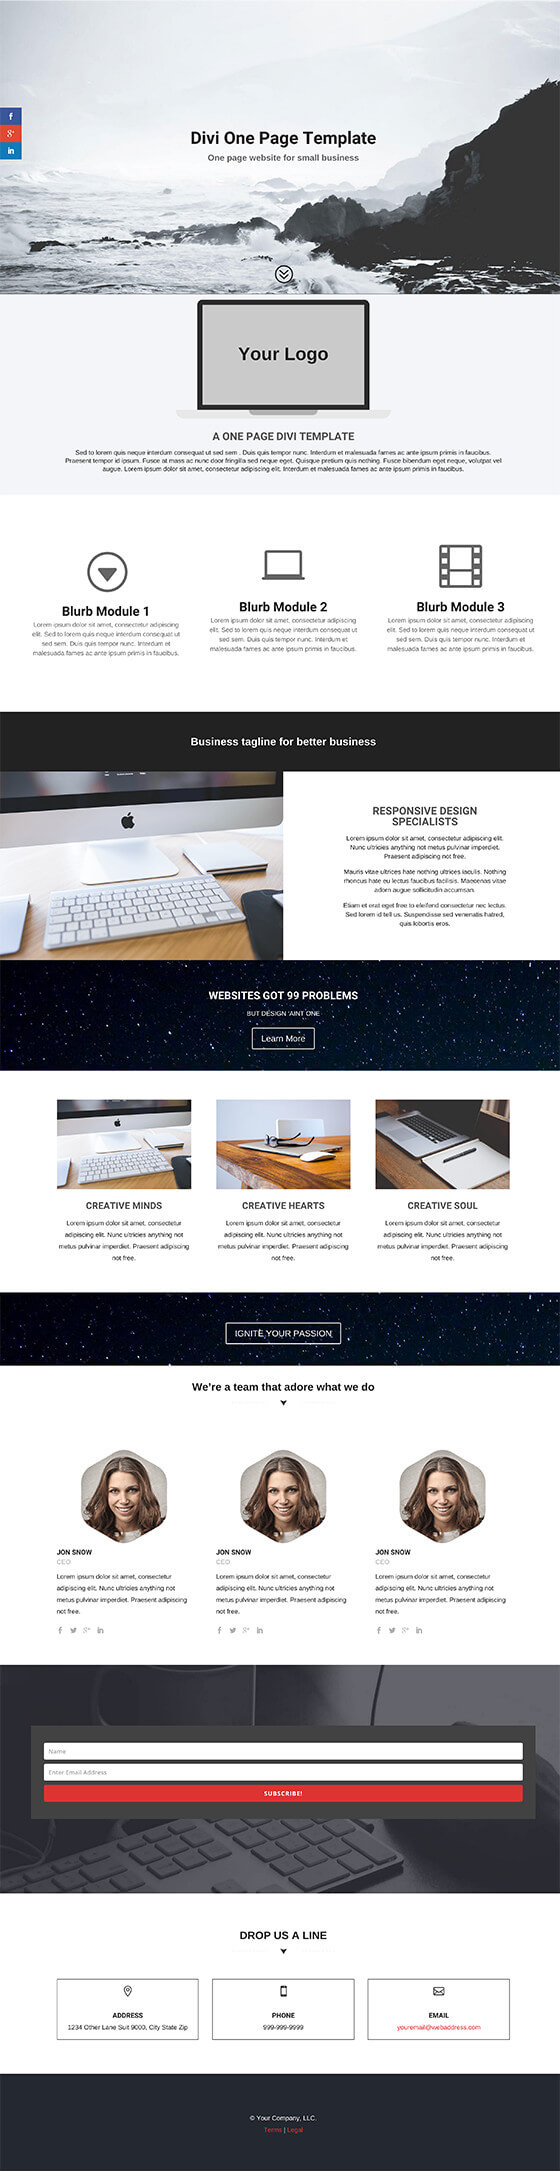 Divi one page business template dilan design full template preview cheaphphosting Image collections